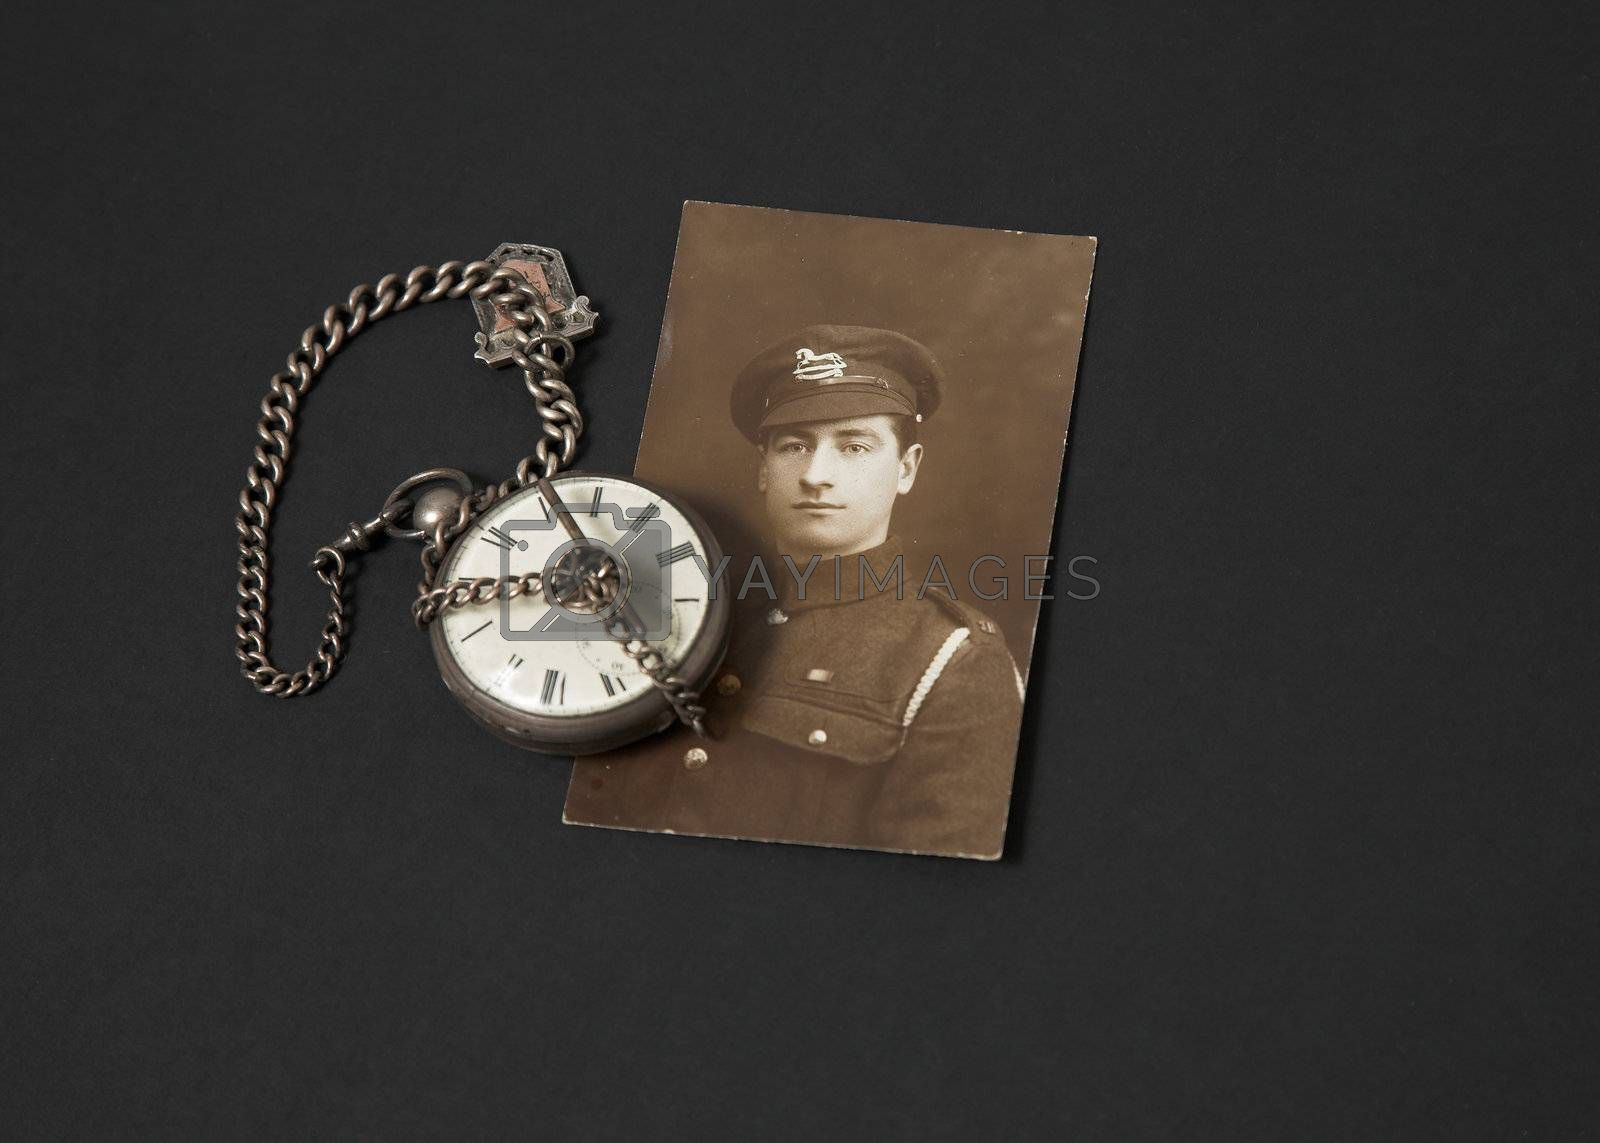 Photograph of a Great War veteran and antique pocket watch